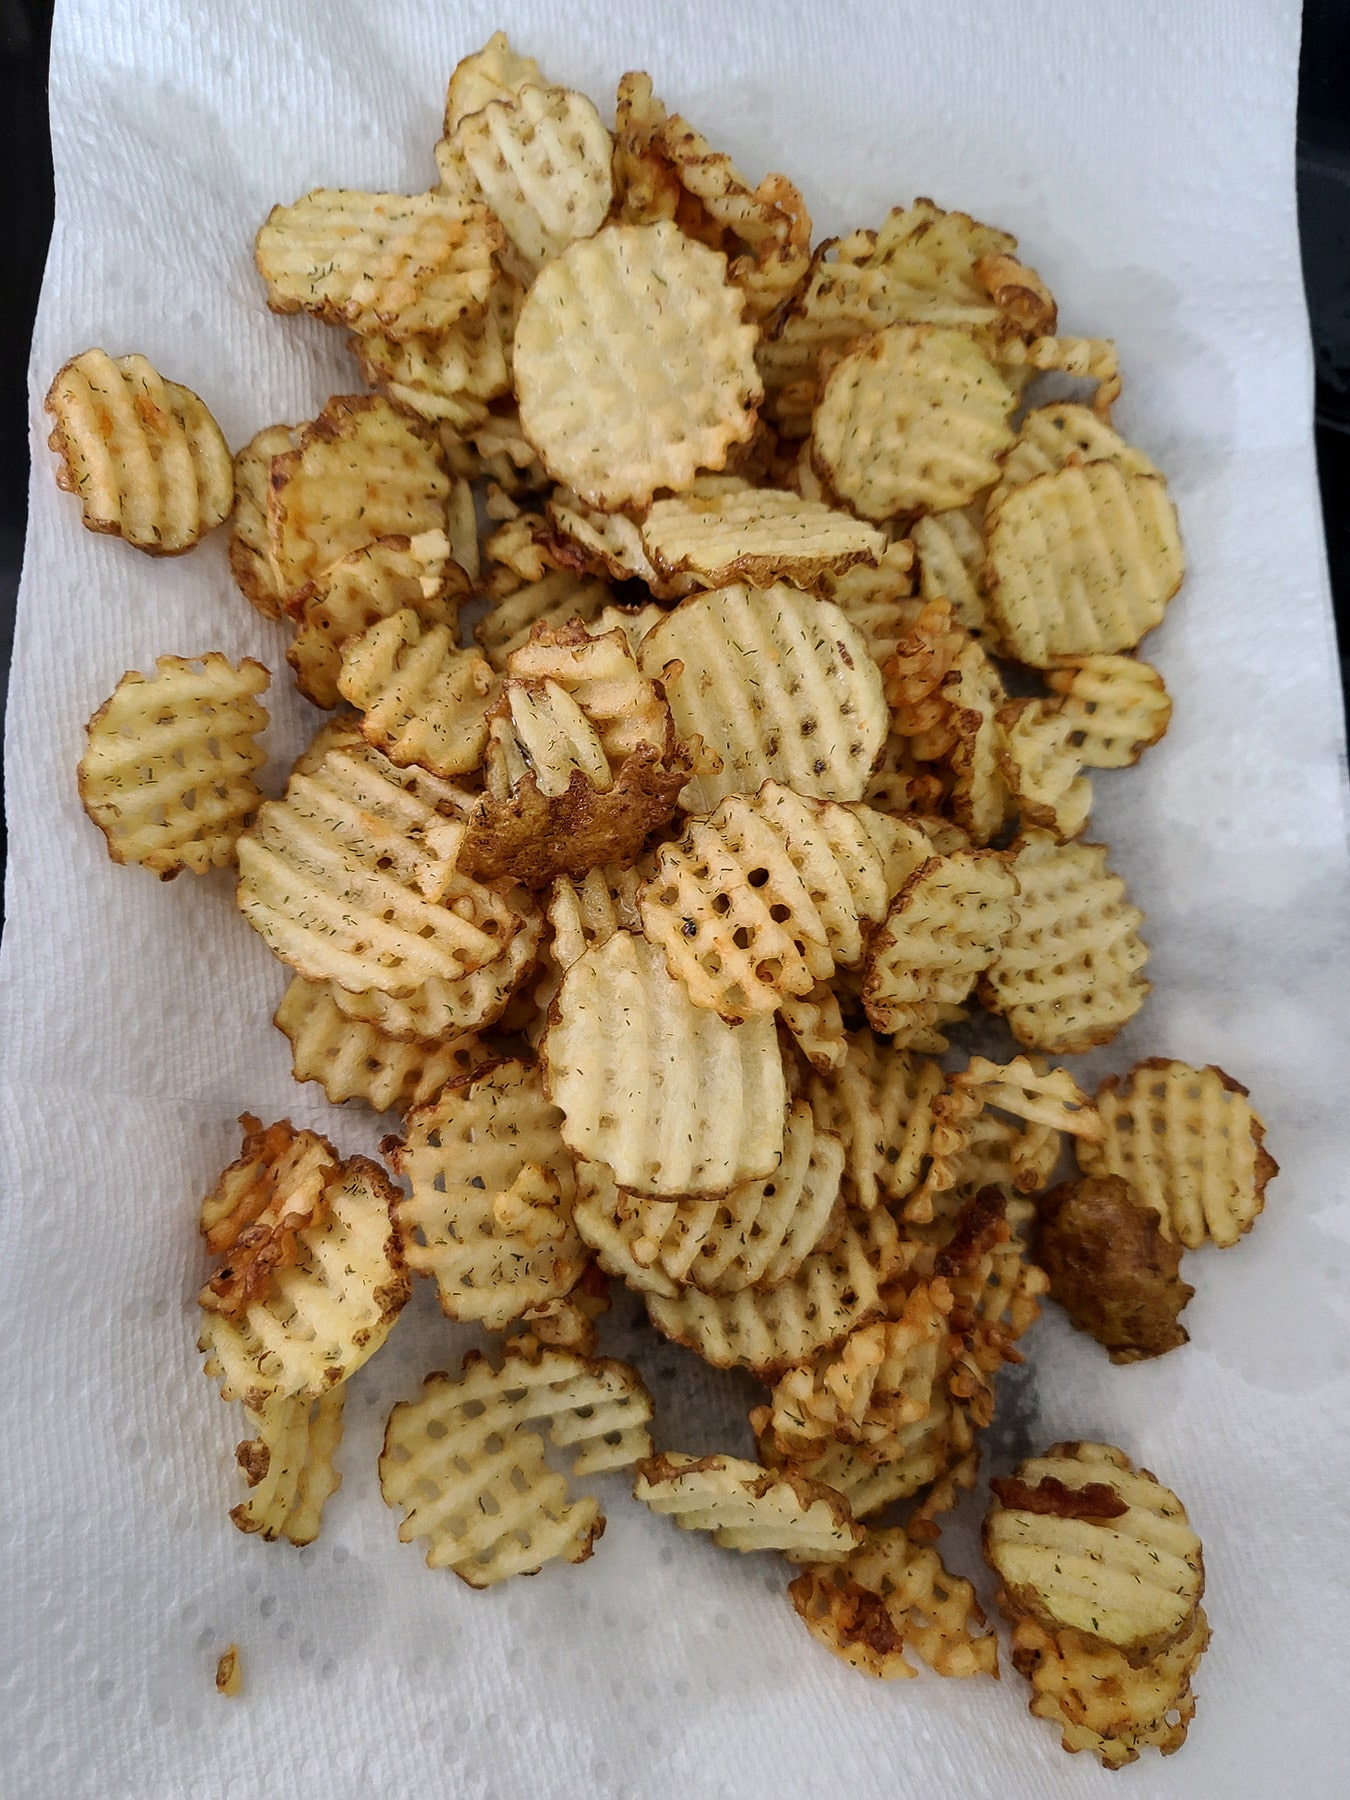 Golden brown waffle cut fries, on a baking sheet lined with paper towels.